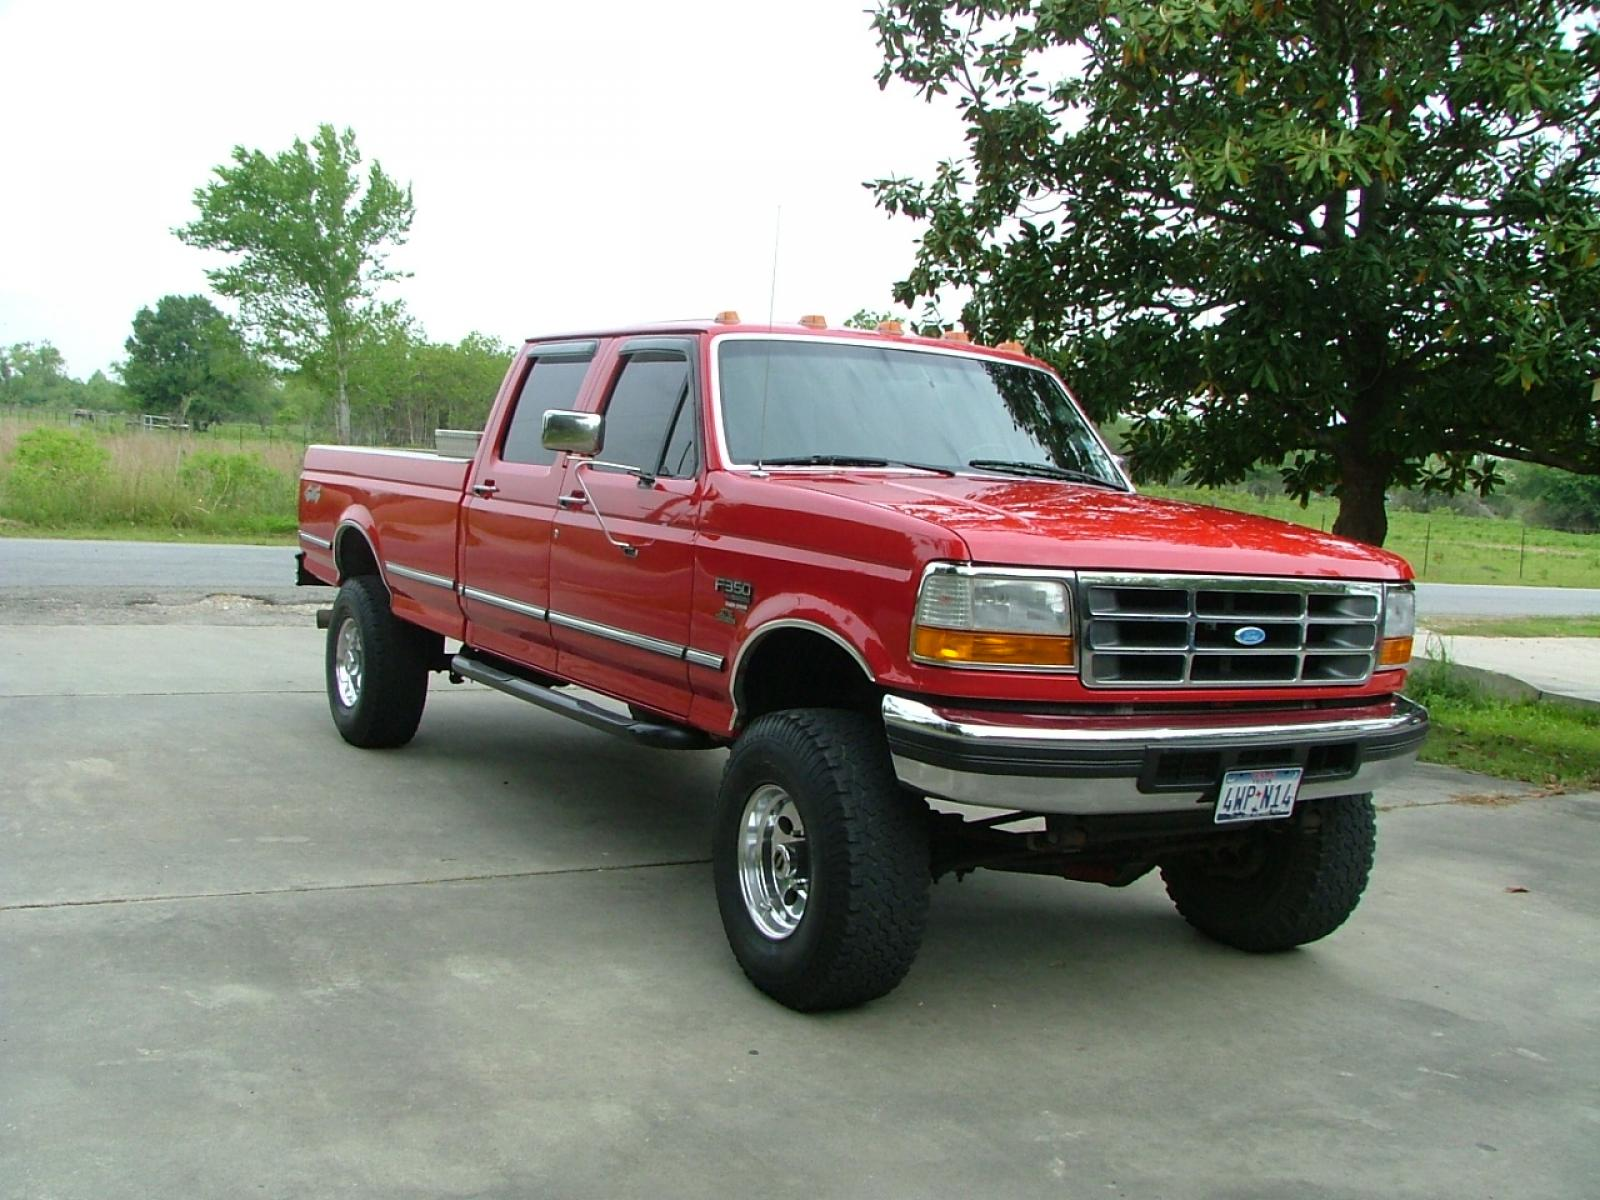 1997 Ford F-350 - Information and photos - Zomb Drive